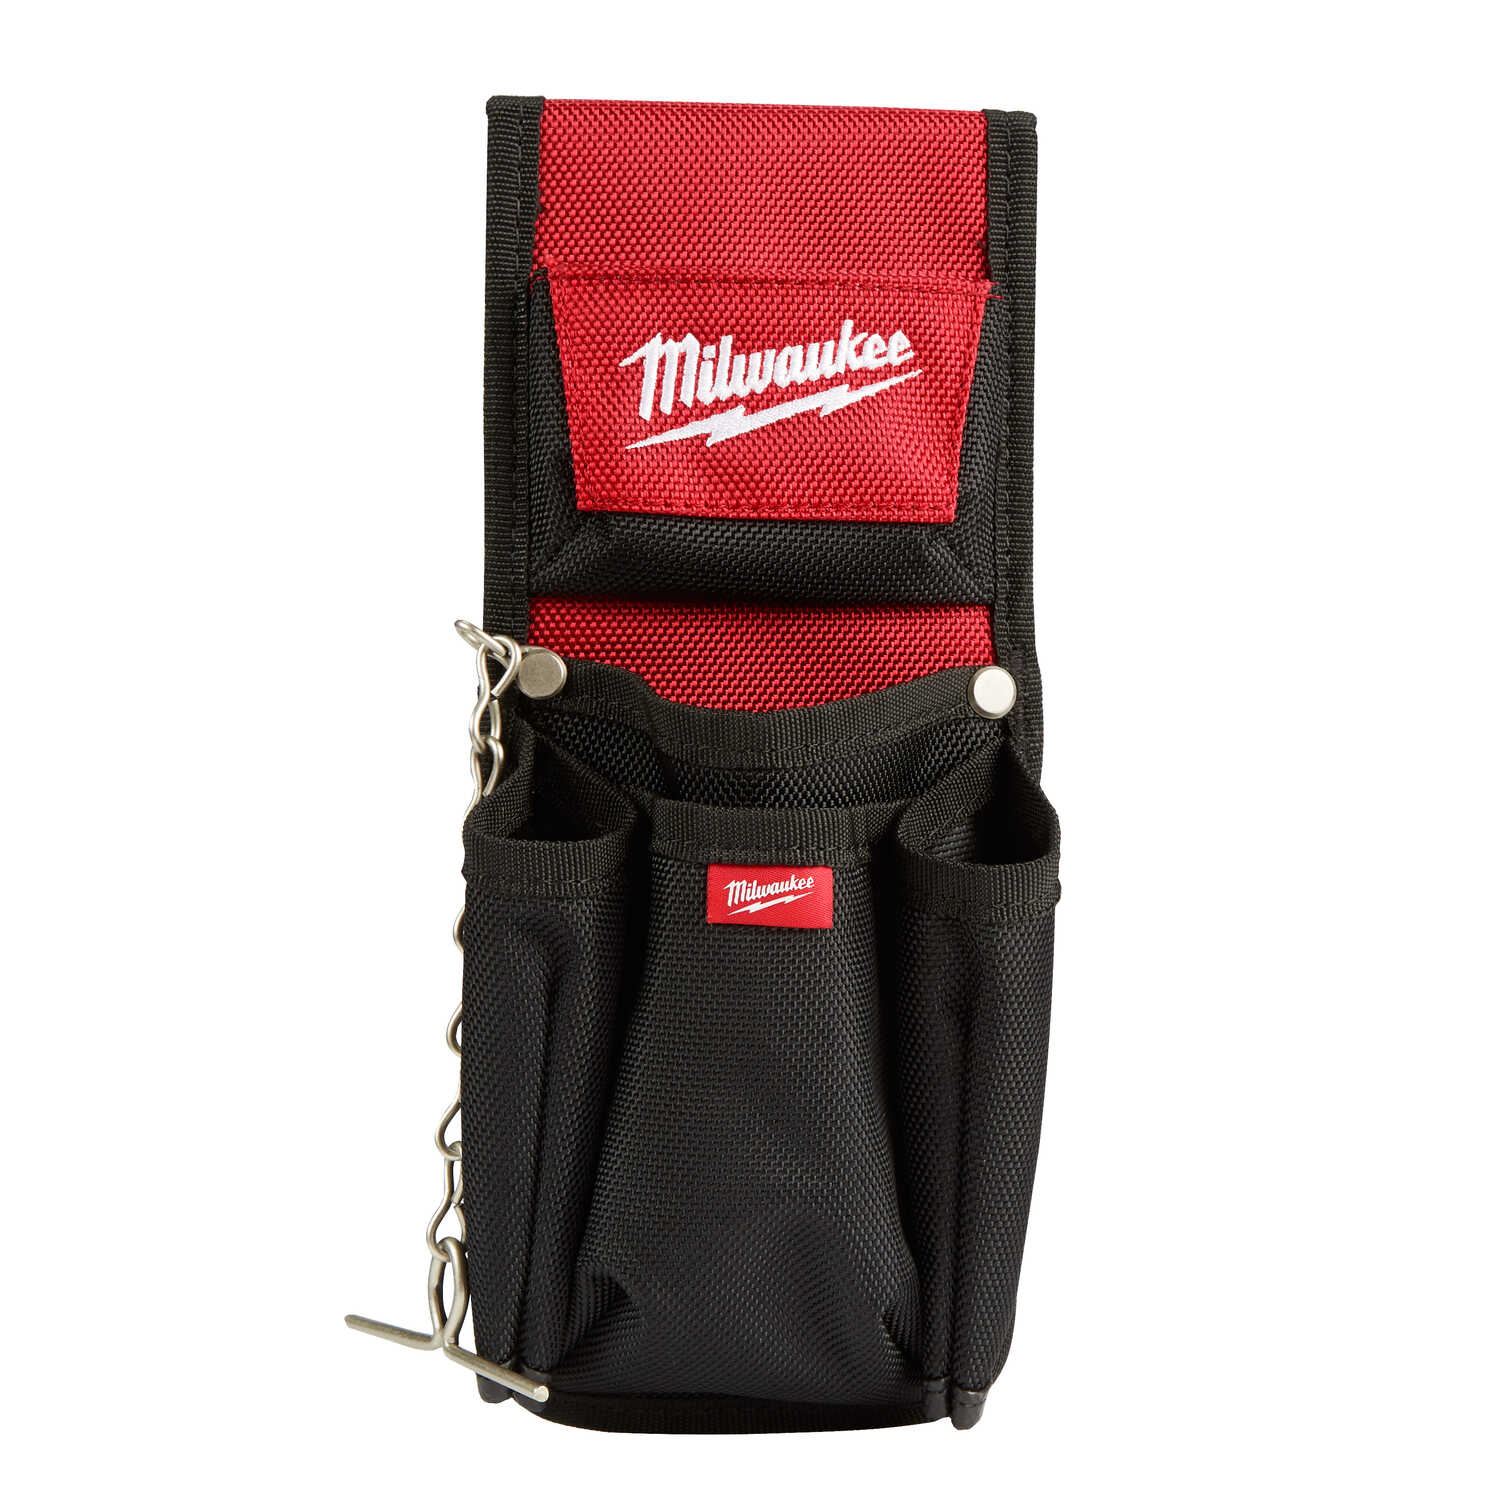 Milwaukee  5.9 in. W x 7.5 in. H Ballistic Nylon  Compact Utility Pouch  7 pocket Black/Red  1 pc.